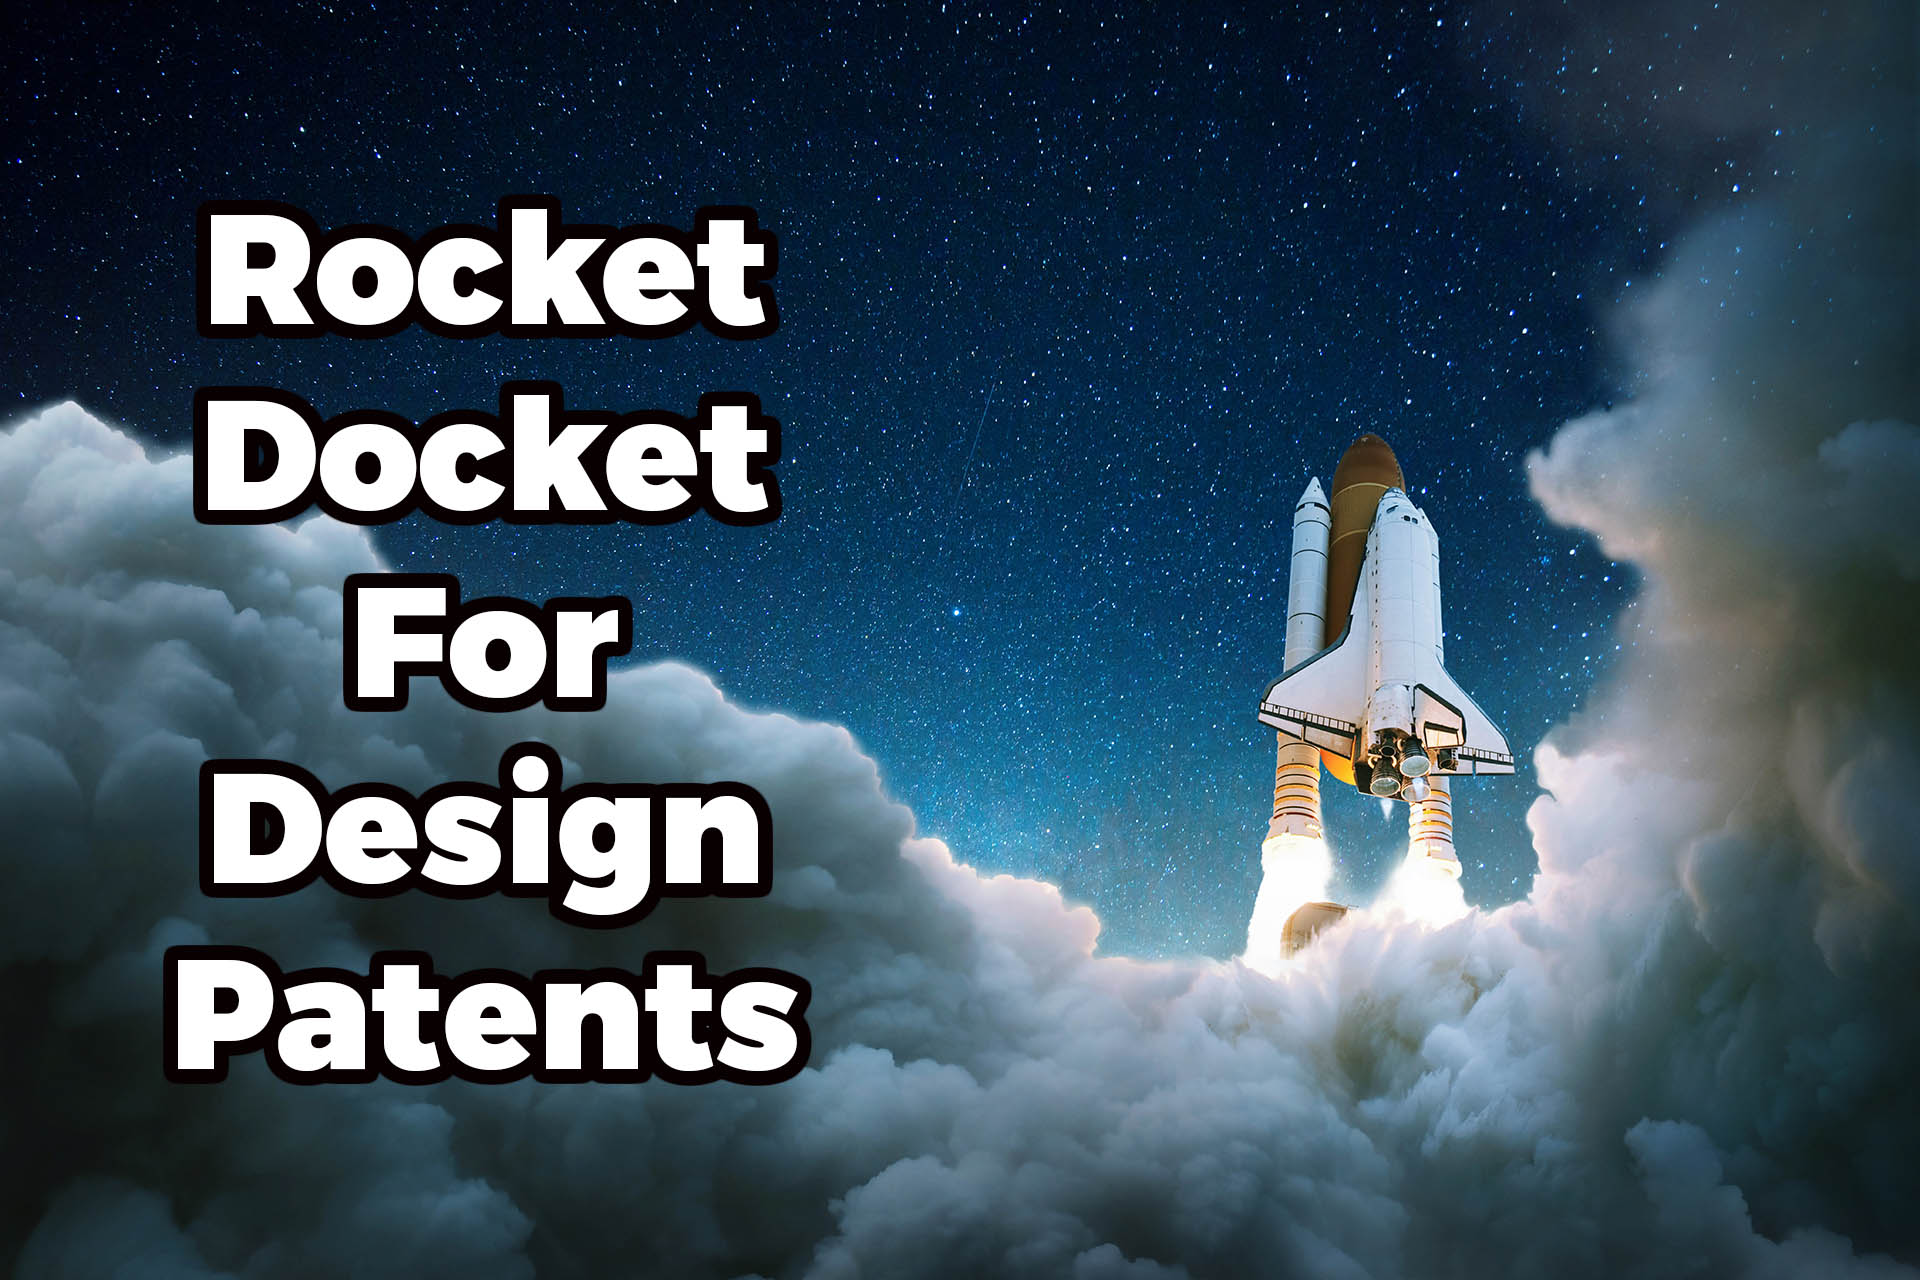 Rocket docket for design patents